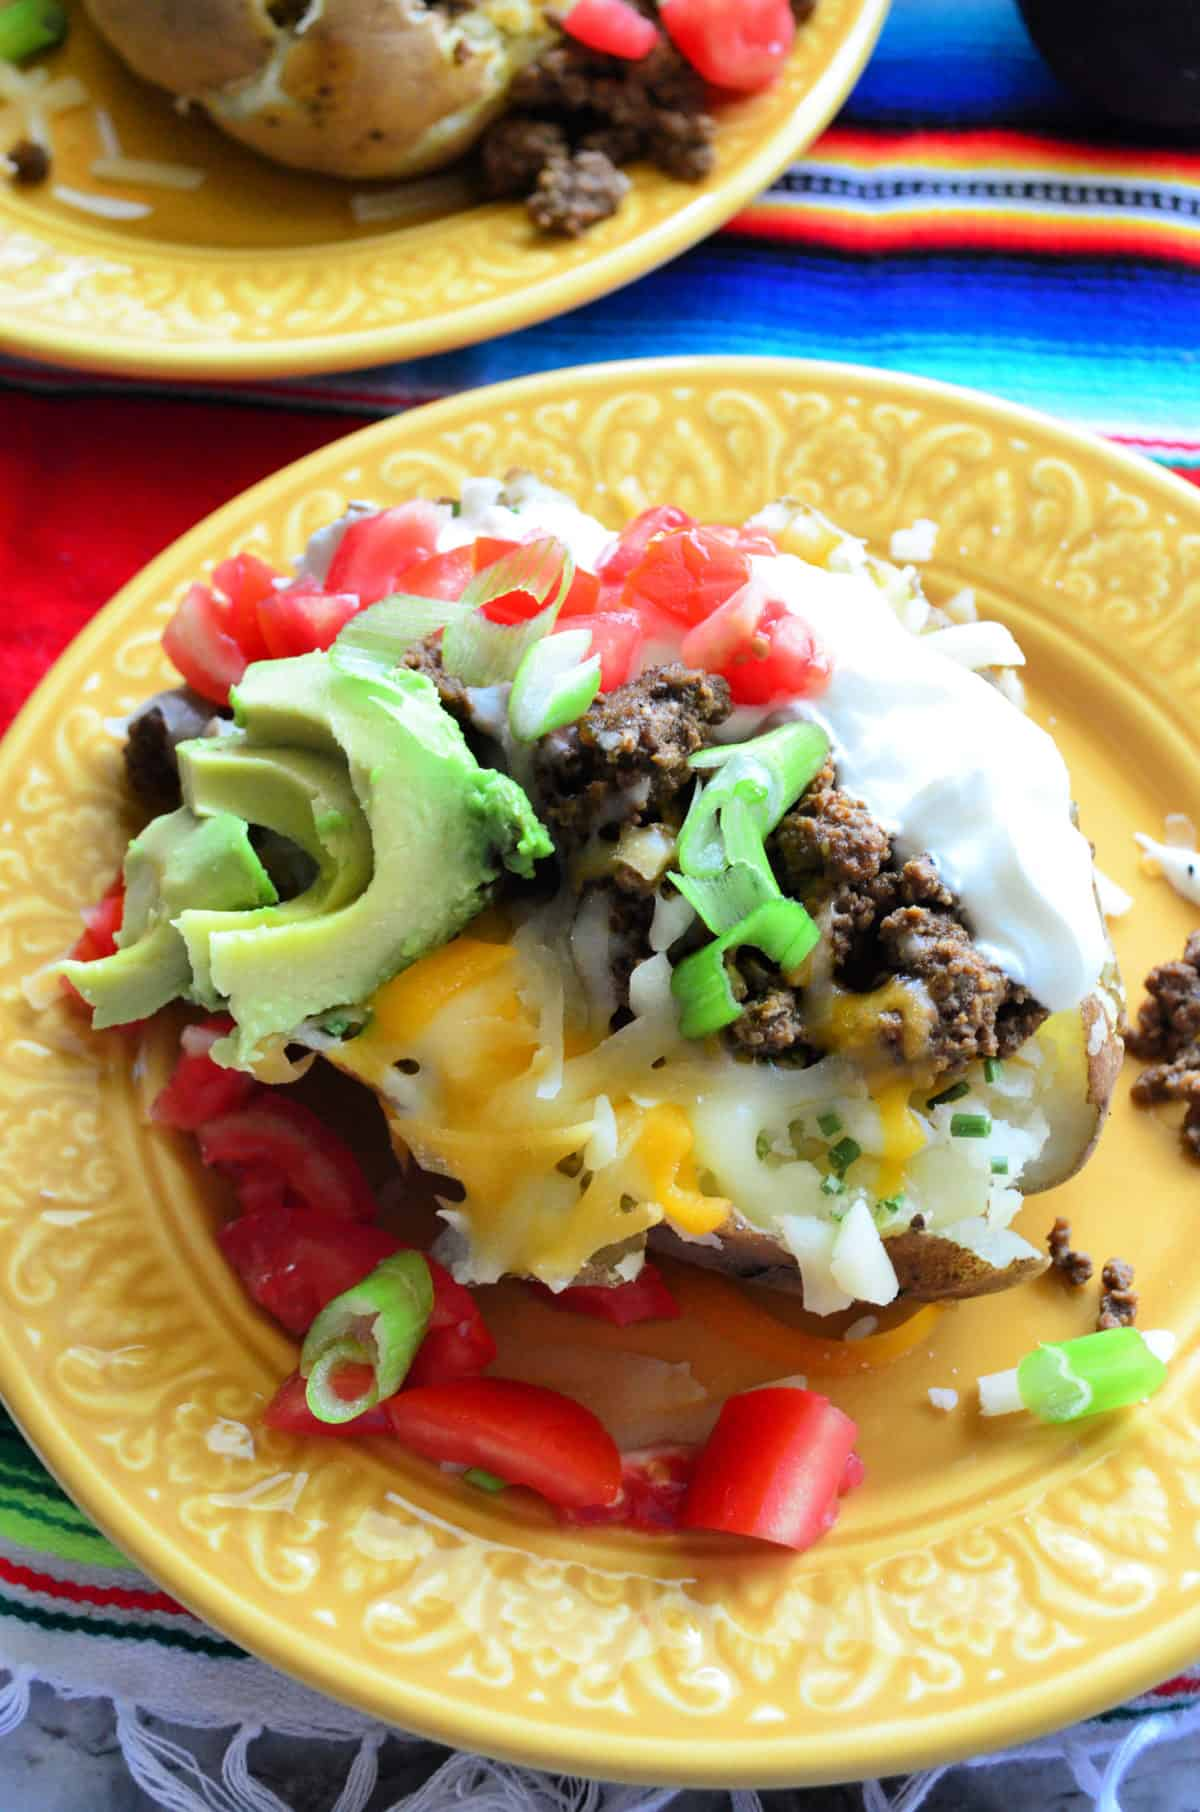 Top view split baked potato with sour cream, meat, tomato, cheese, avocado, green onions on plate.